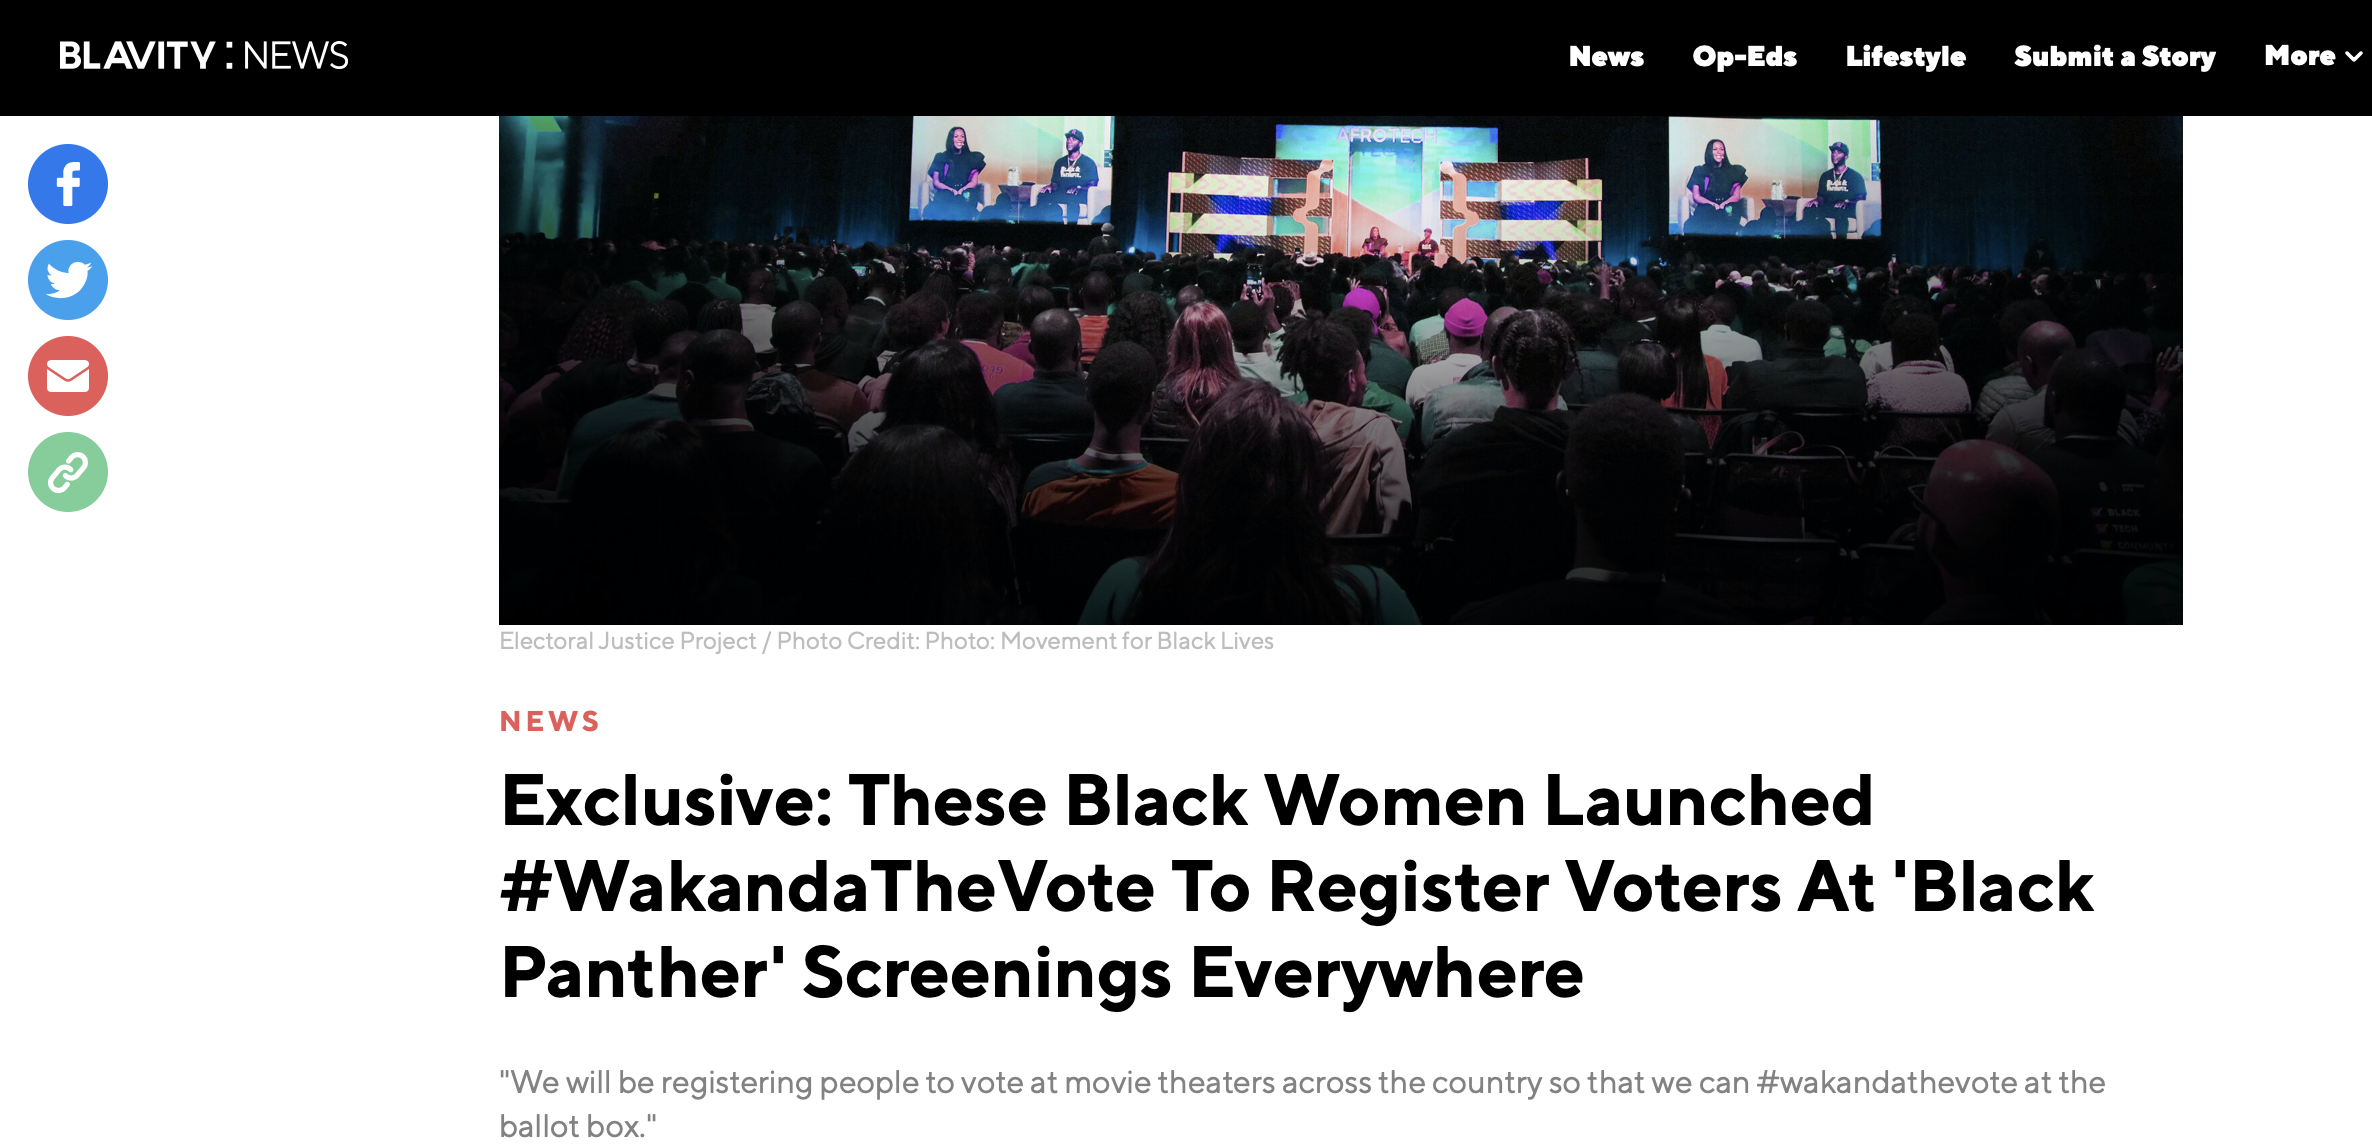 Exclusive: These Black Women Launched #WakandaTheVote To Register Voters At 'Black Panther' Screenings Everywhere